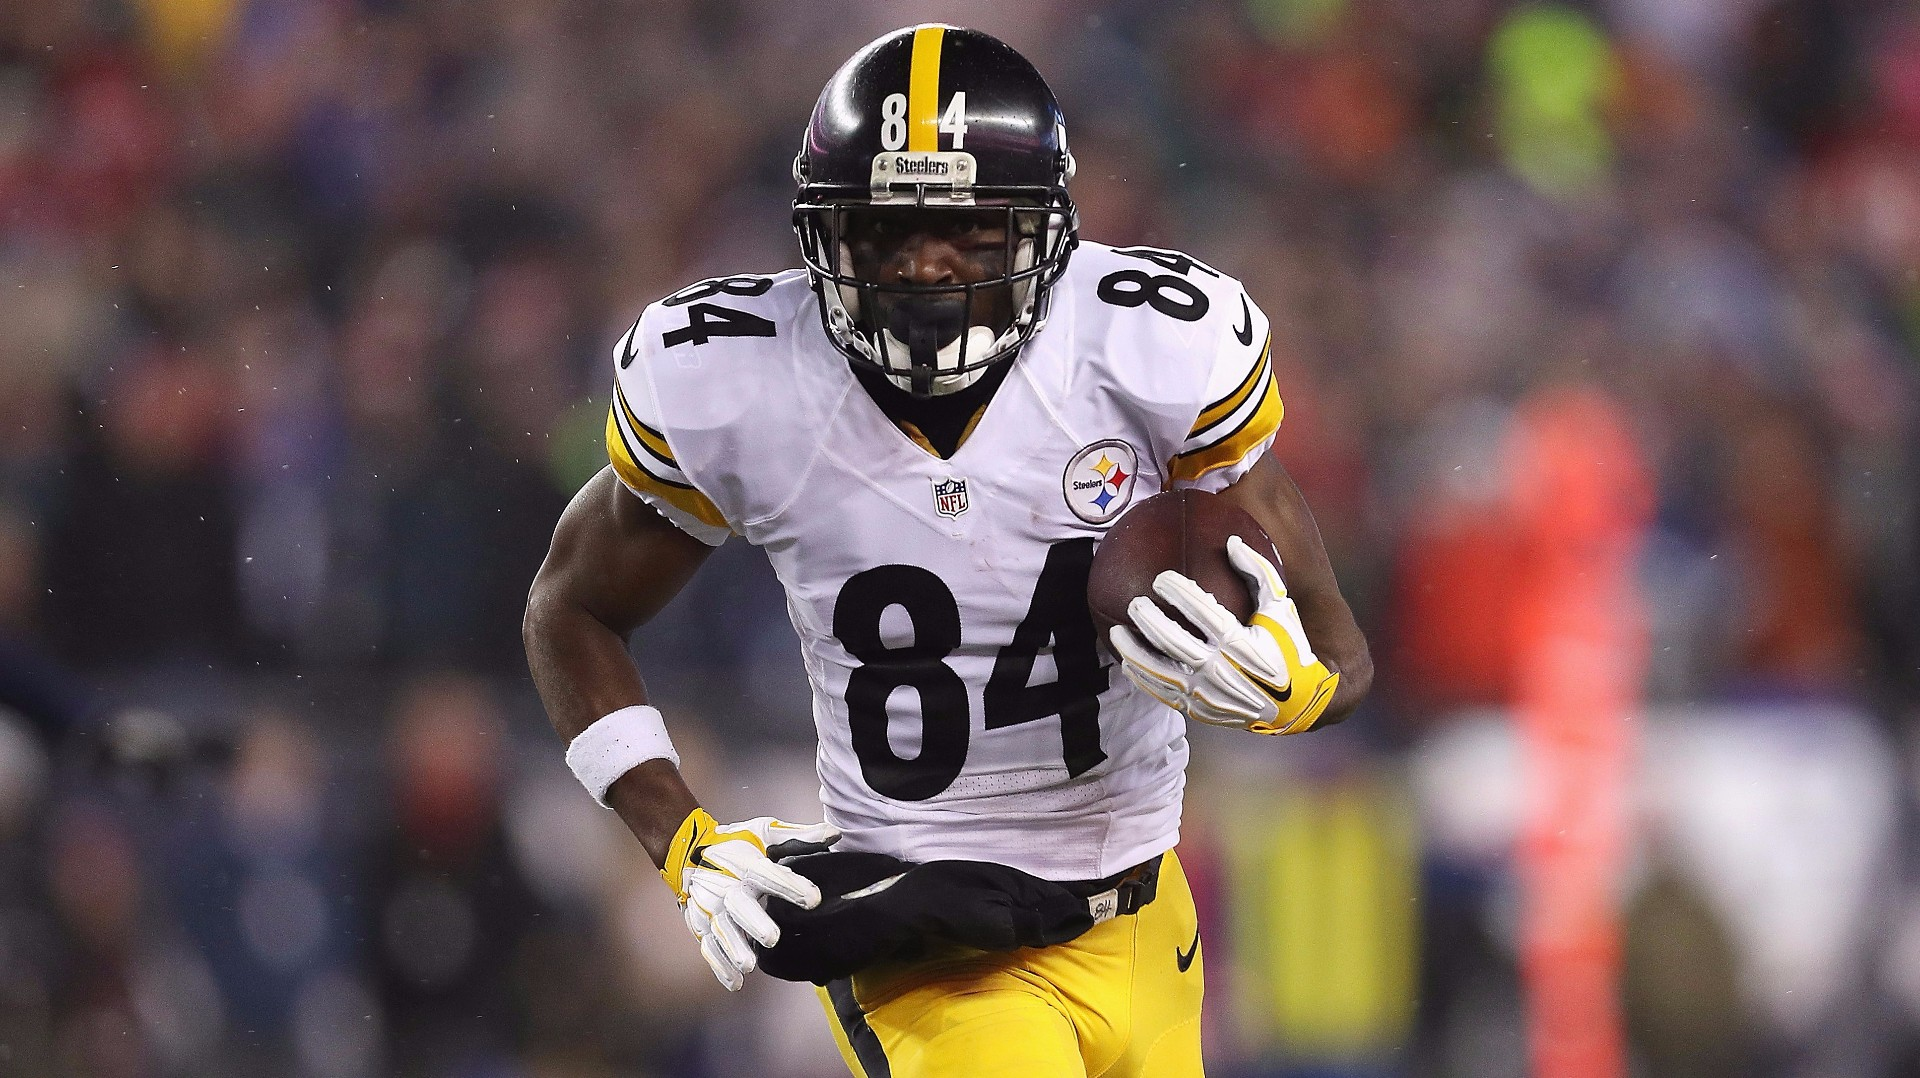 Steelers make Antonio Brown highest-paid WR | khou.com